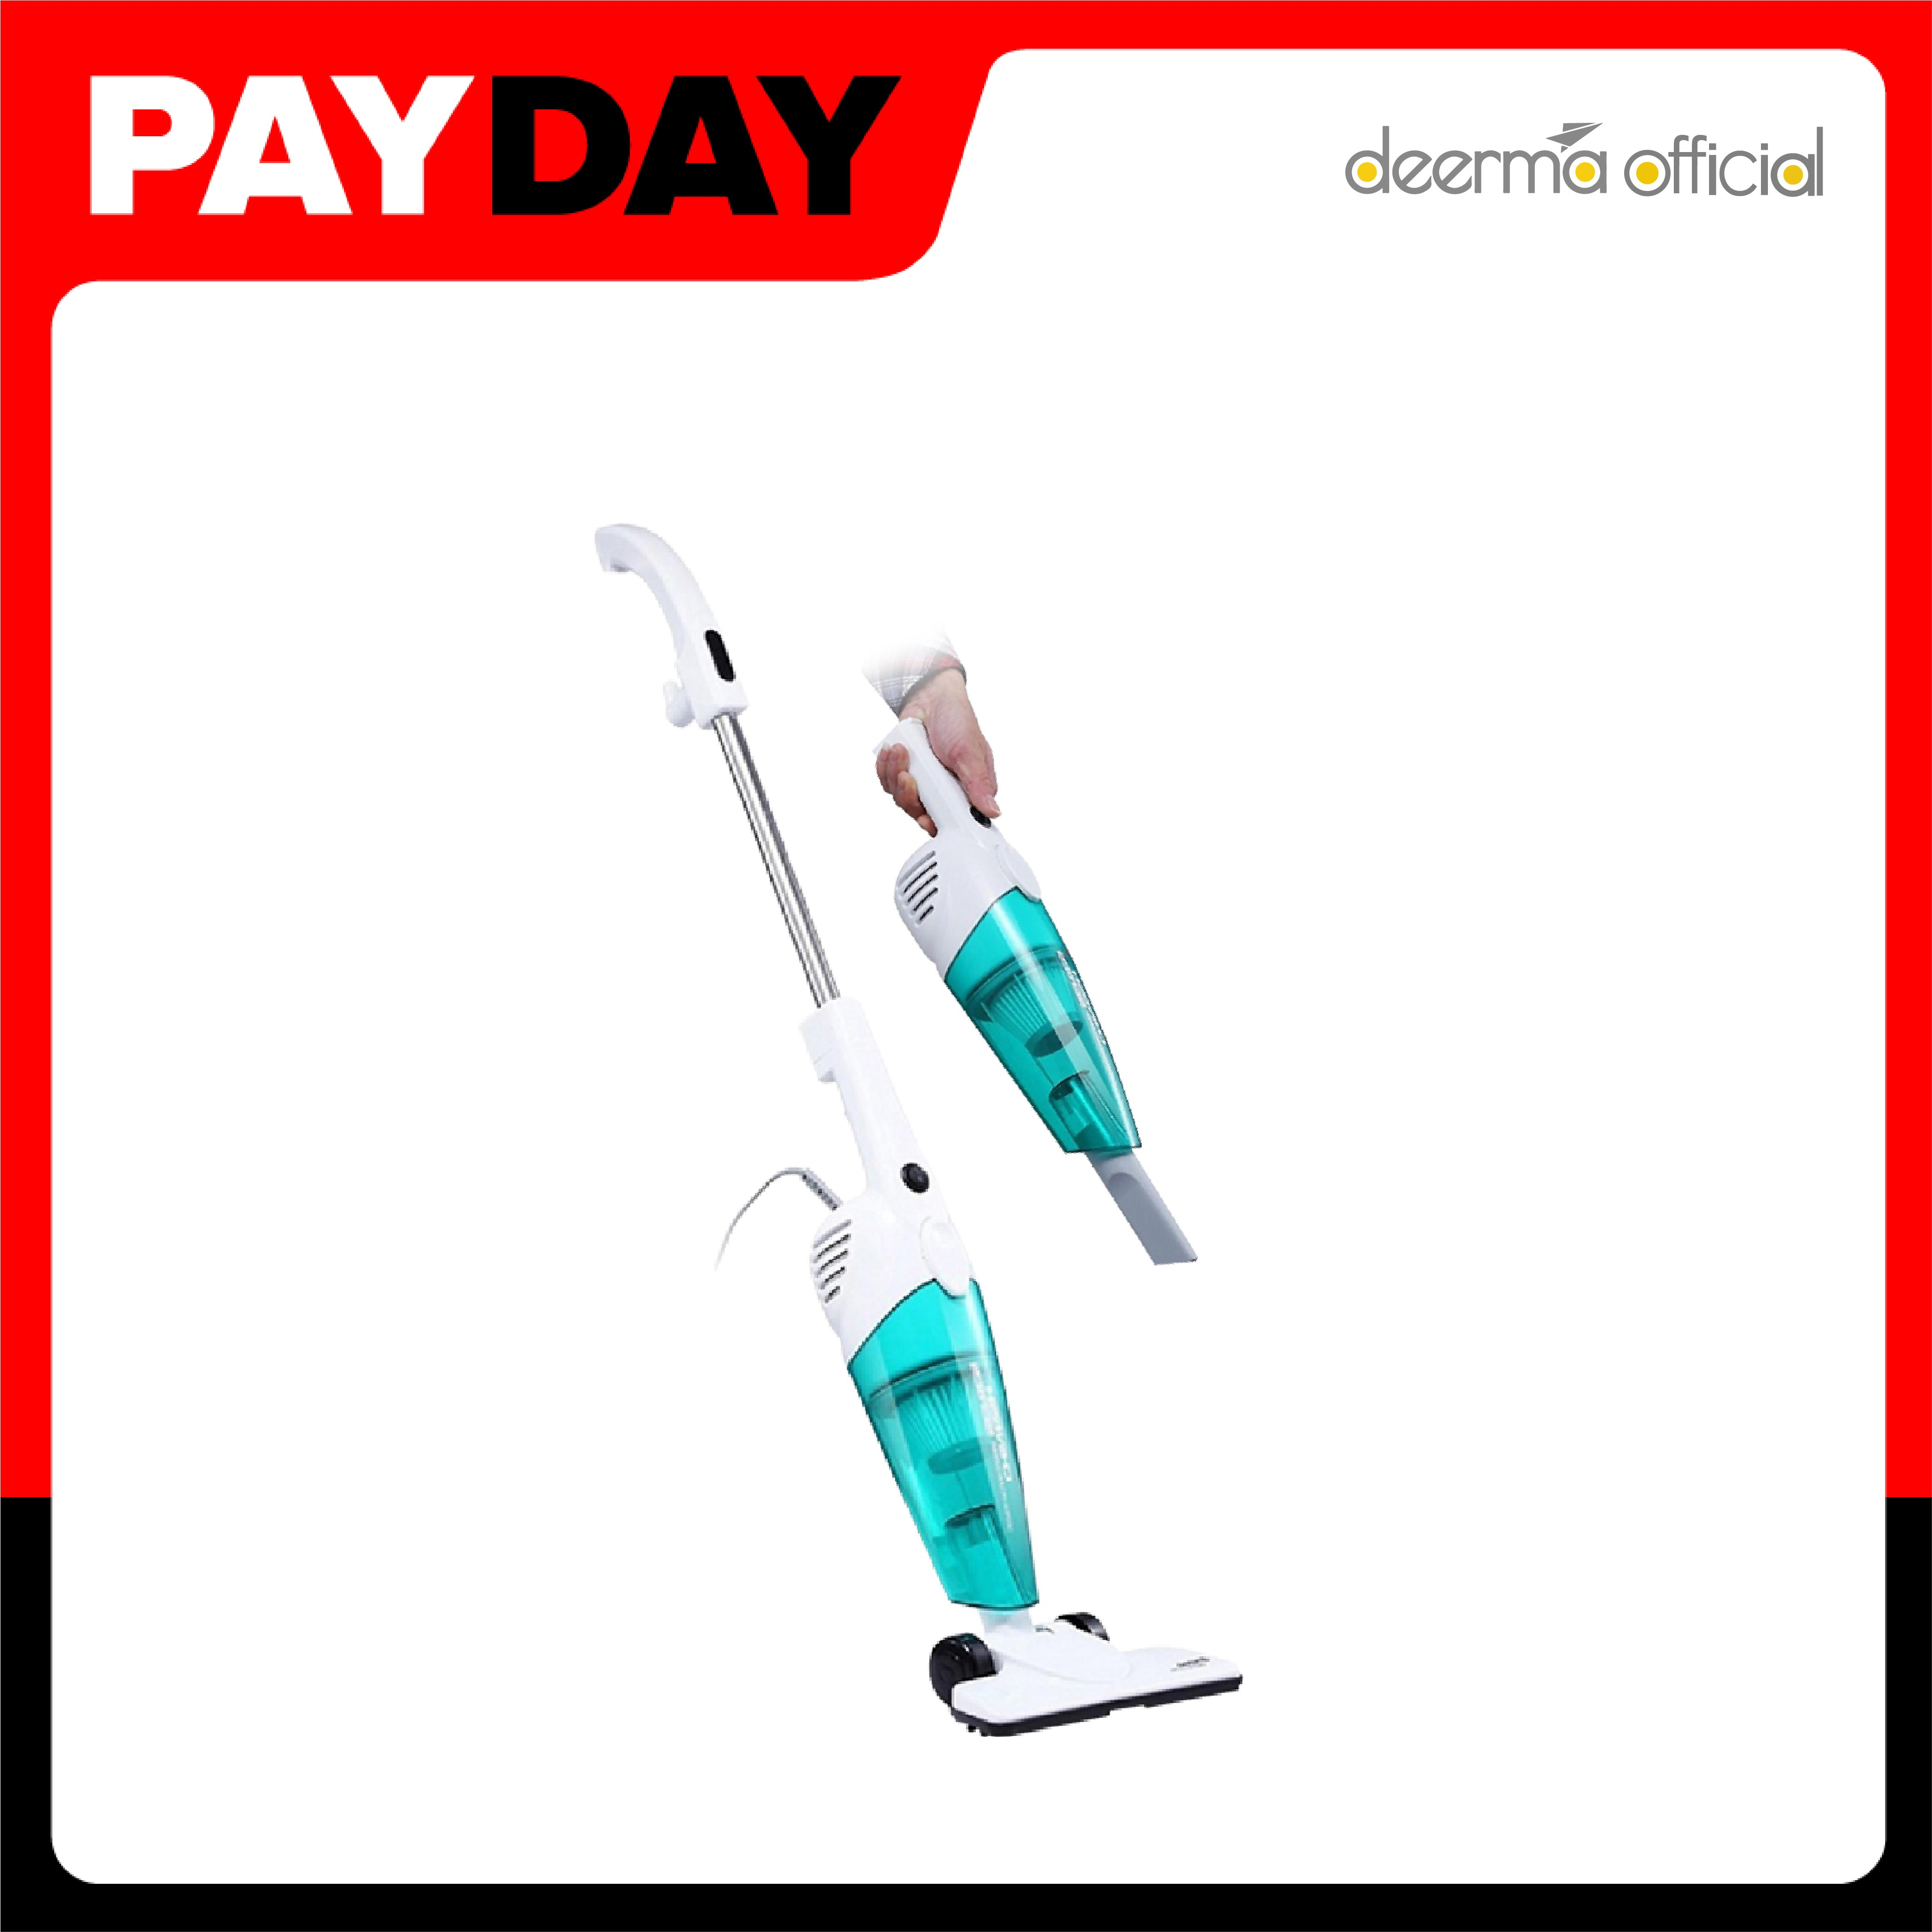 Deerma Electric Vacuum Cleaner Dx118c Easy To Use Handle Changing Head Vacuum Cleaner For Home Use [warranty 1 Year ].